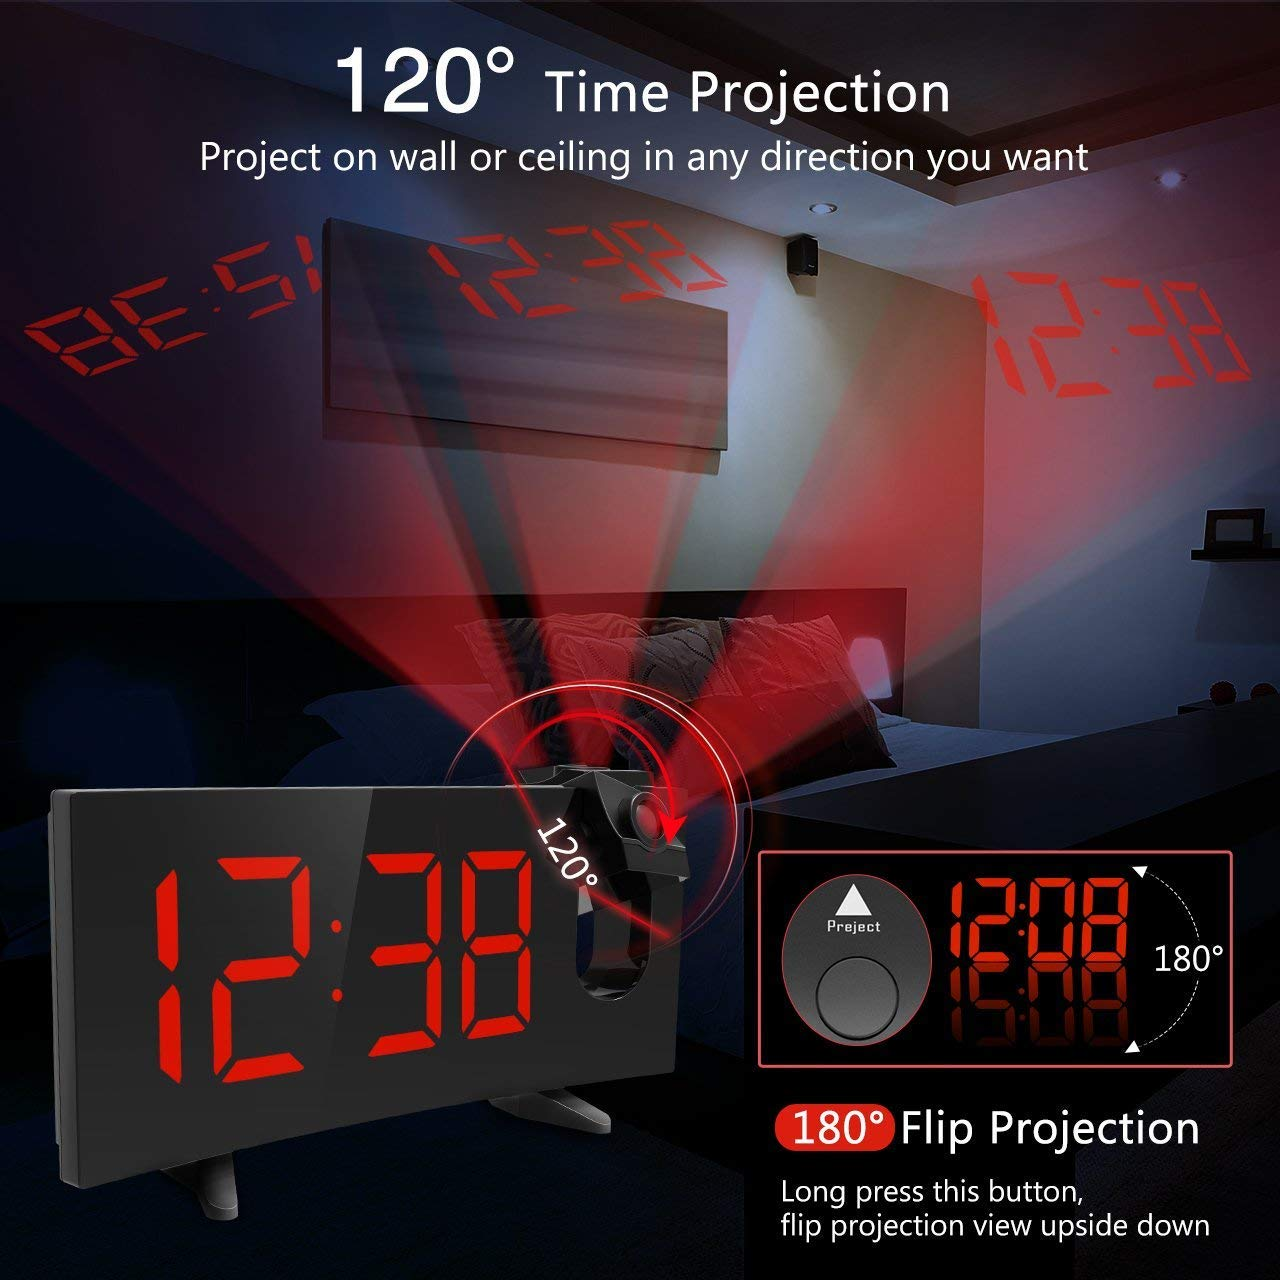 PICTEK Projection Alarm Clock FM 5-Inch Dimmable Screen Ceiling Display, Kids Radio with Dual Snooze Function, Digital Alarm Clock Projector for Bedroom YTGEHM126BBUS-USAA1-H